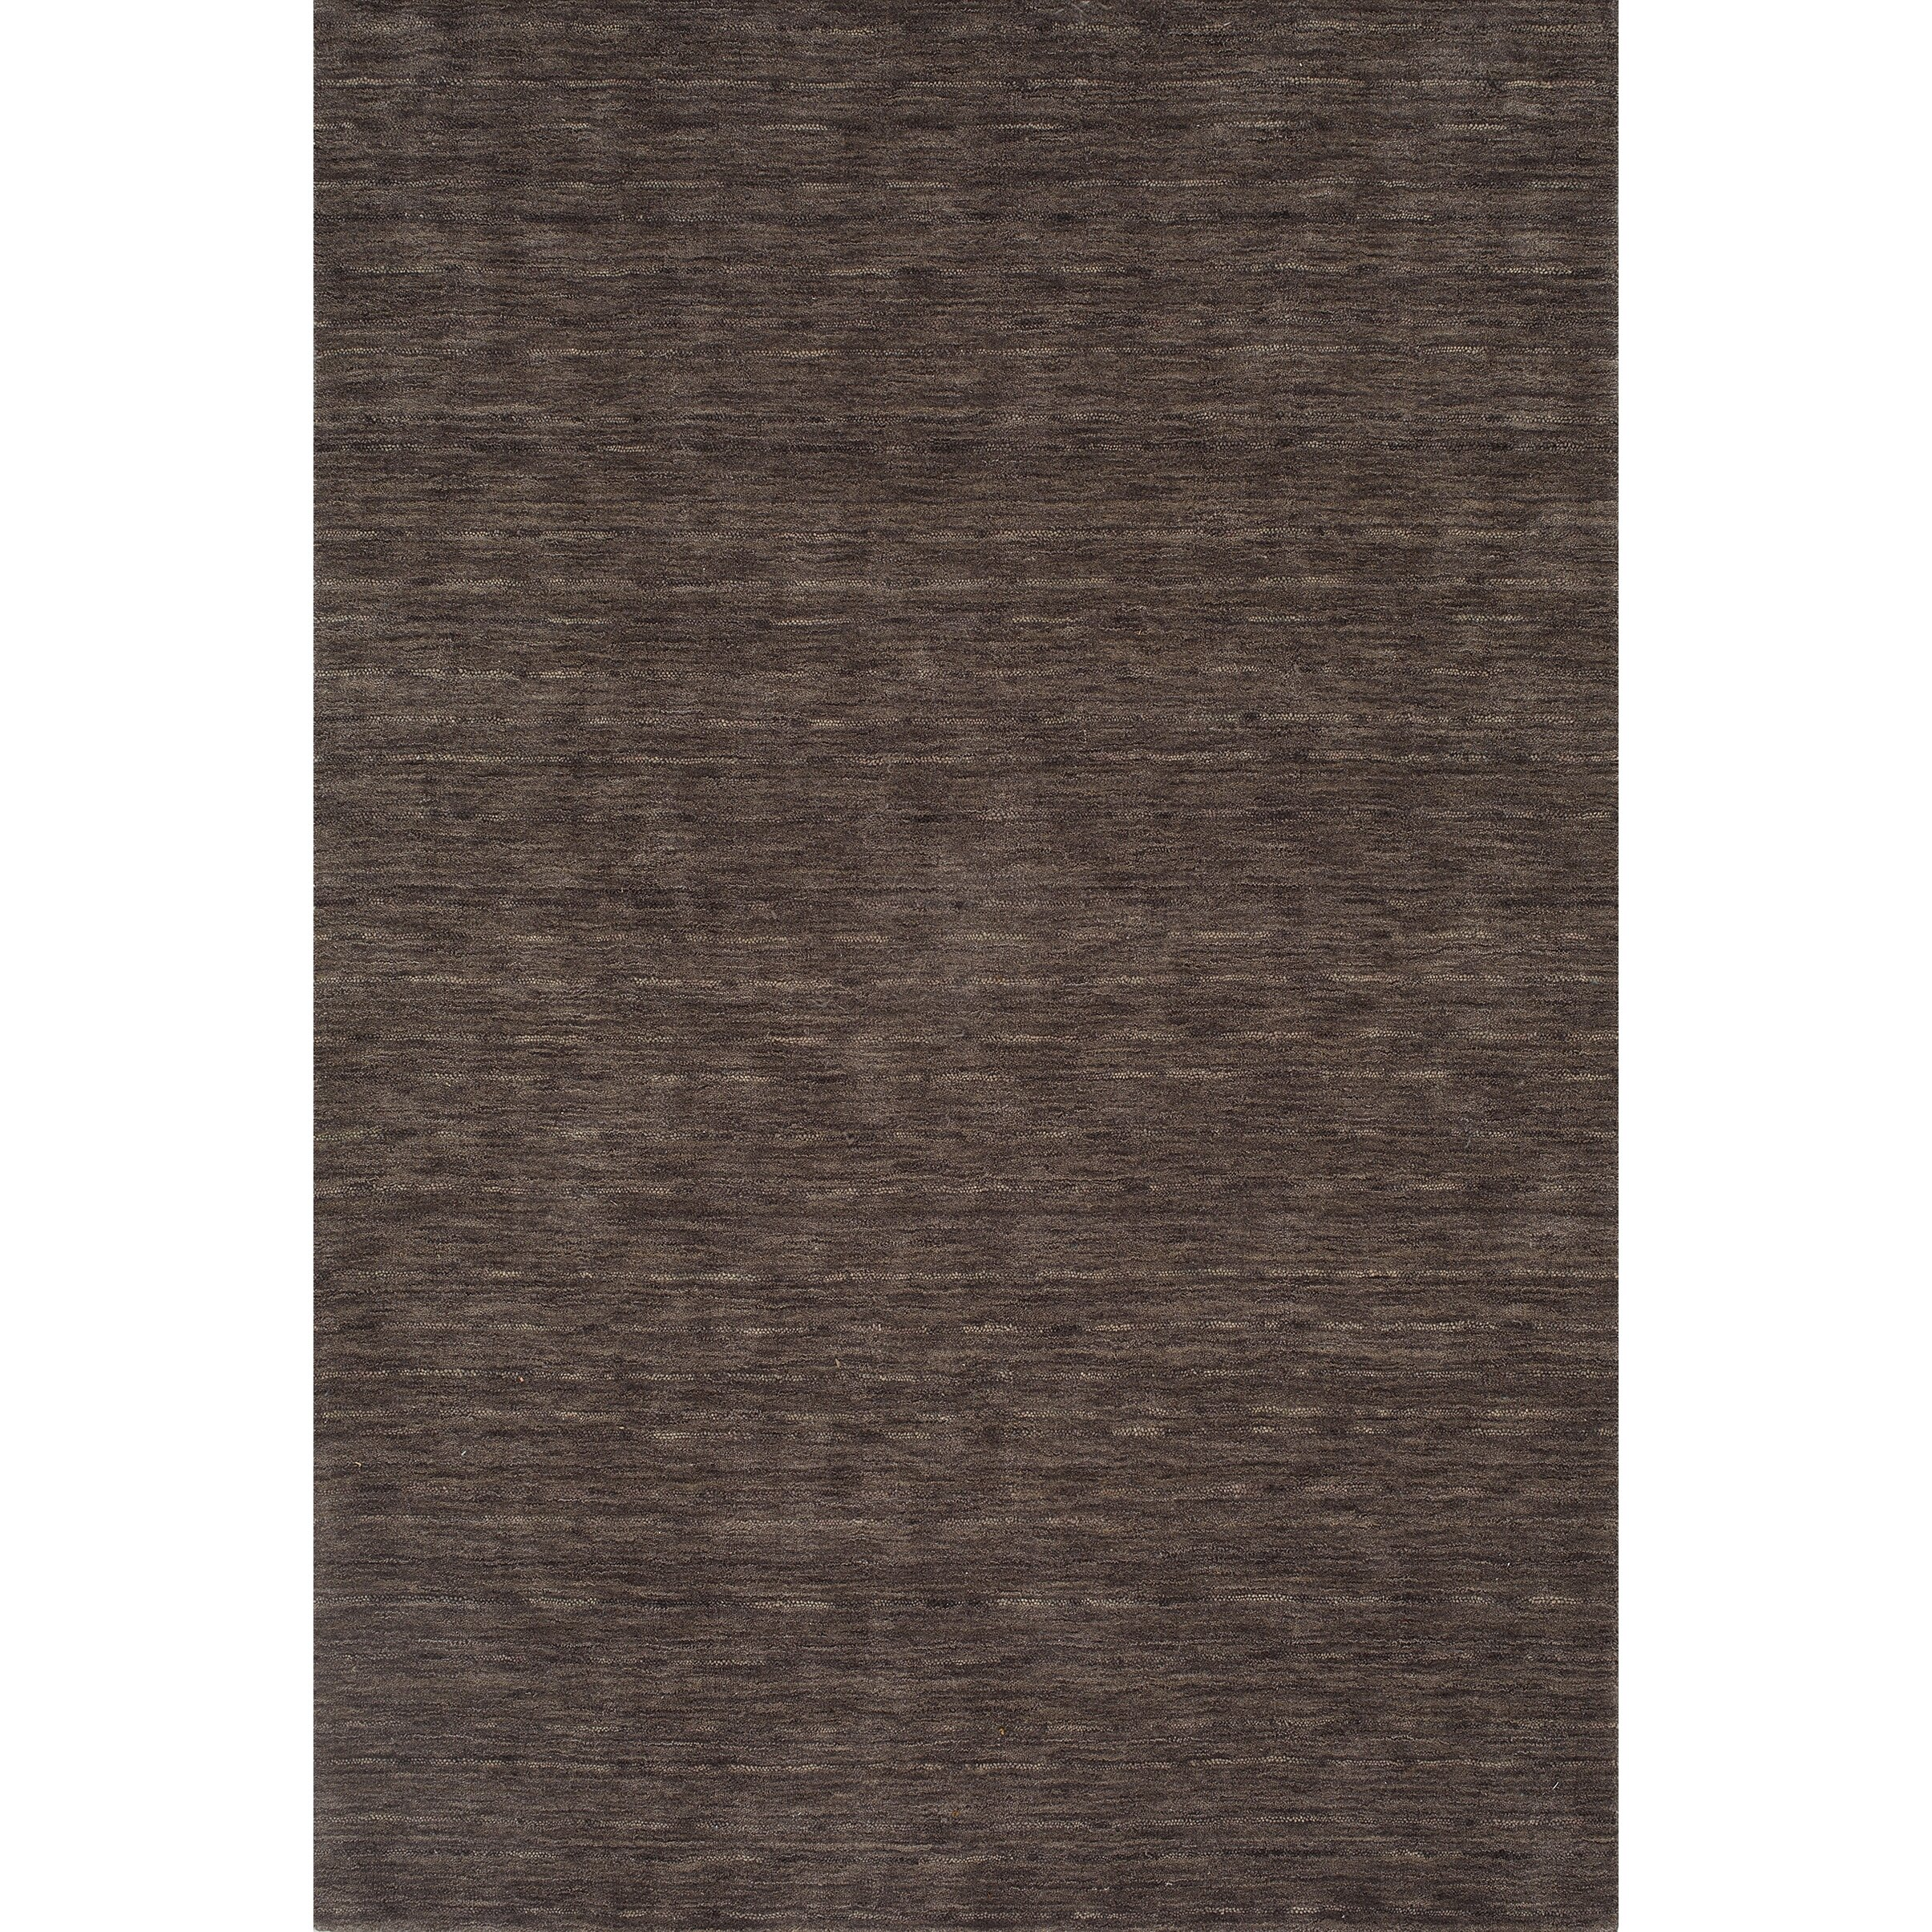 office modern carpet texture preview product spotlight. office modern carpet texture preview spotlight dalyn rug co rafia charcoal area product